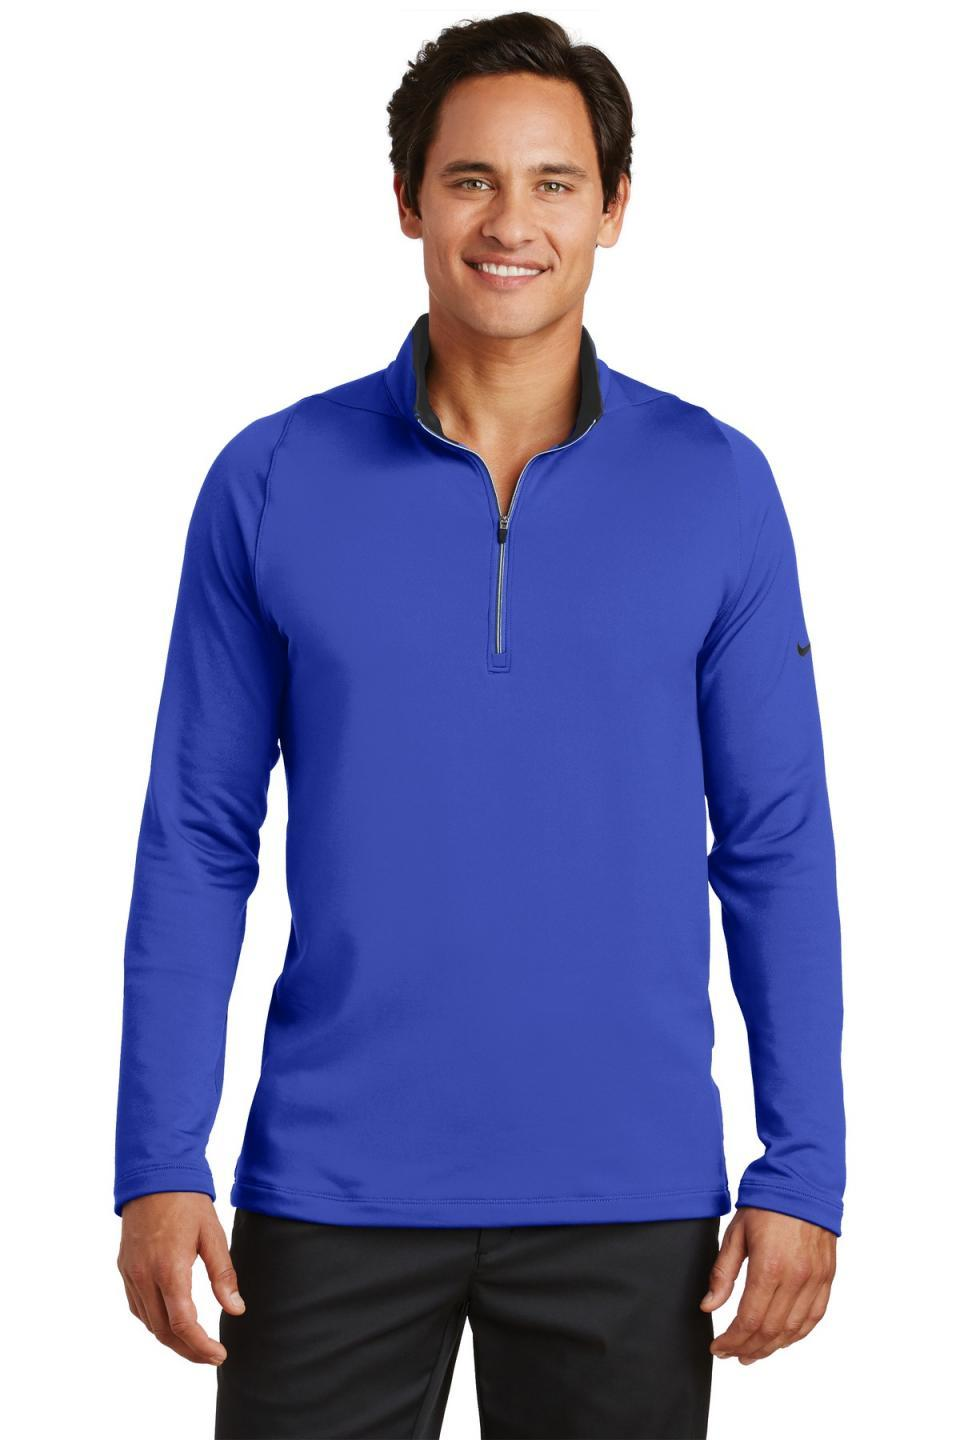 Nike Men's Dri-FIT Stretch 1/2-Zip Cover-Up